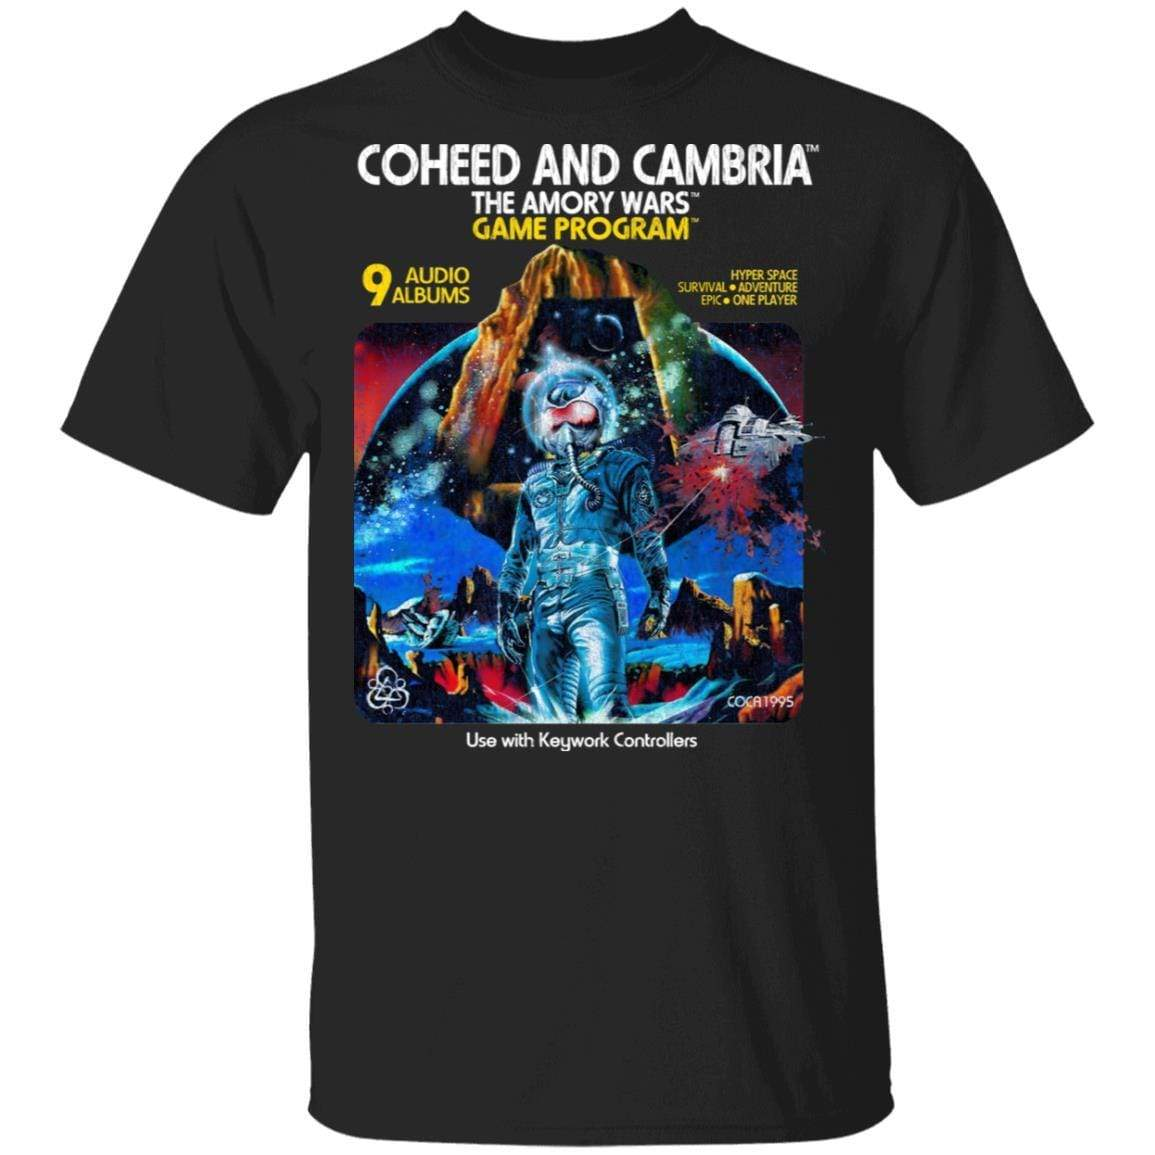 Coheed And Cambria The Amory Wars Game Program T-Shirts, Hoodies 1049-9953-92947929-48144 - Tee Ript